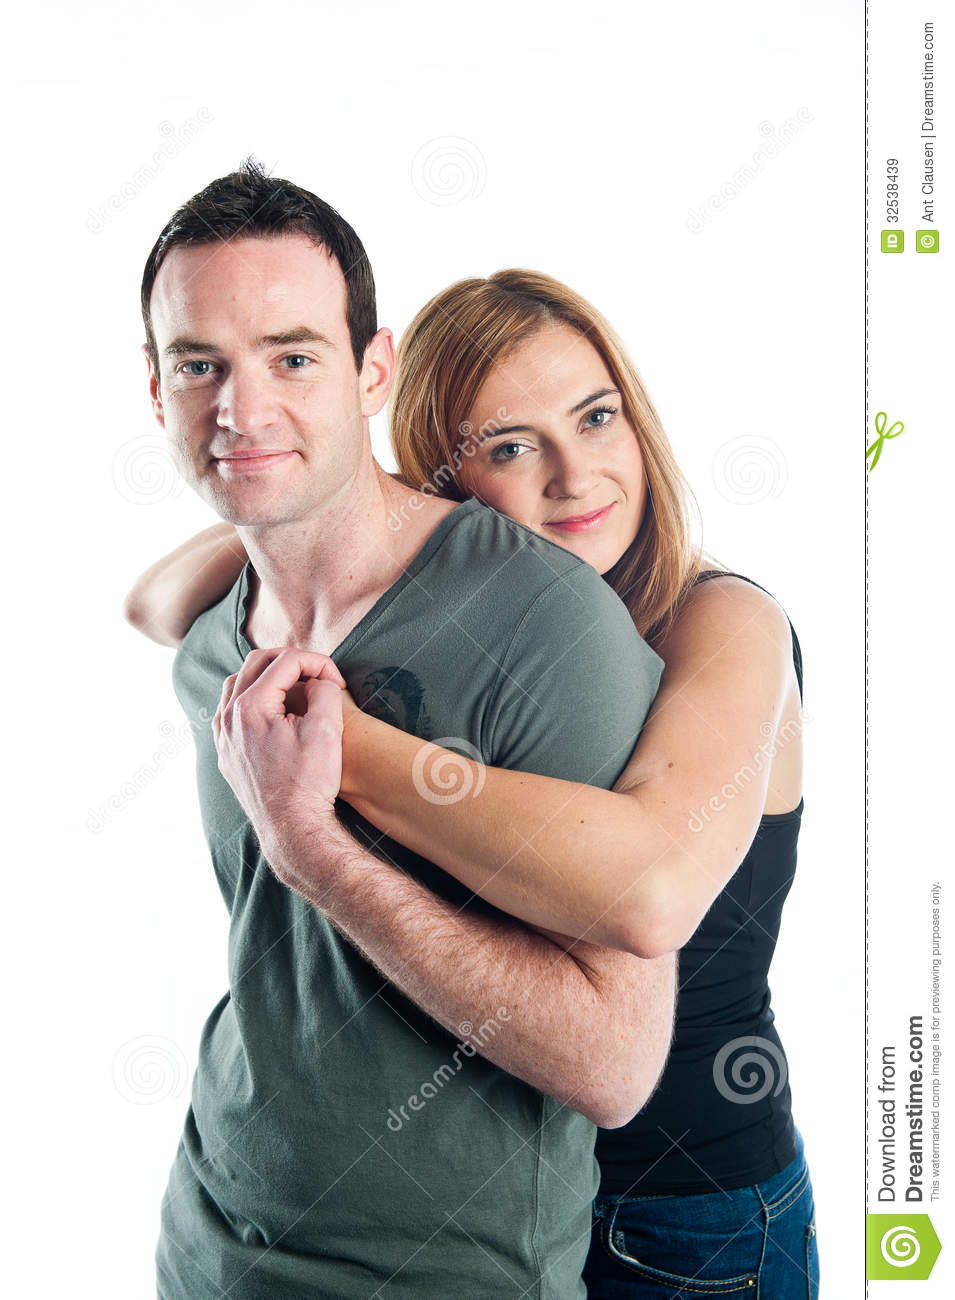 https://thumbs.dreamstime.com/z/happy-couple-smiling-camera-cuddling-white-background-32538439.jpg